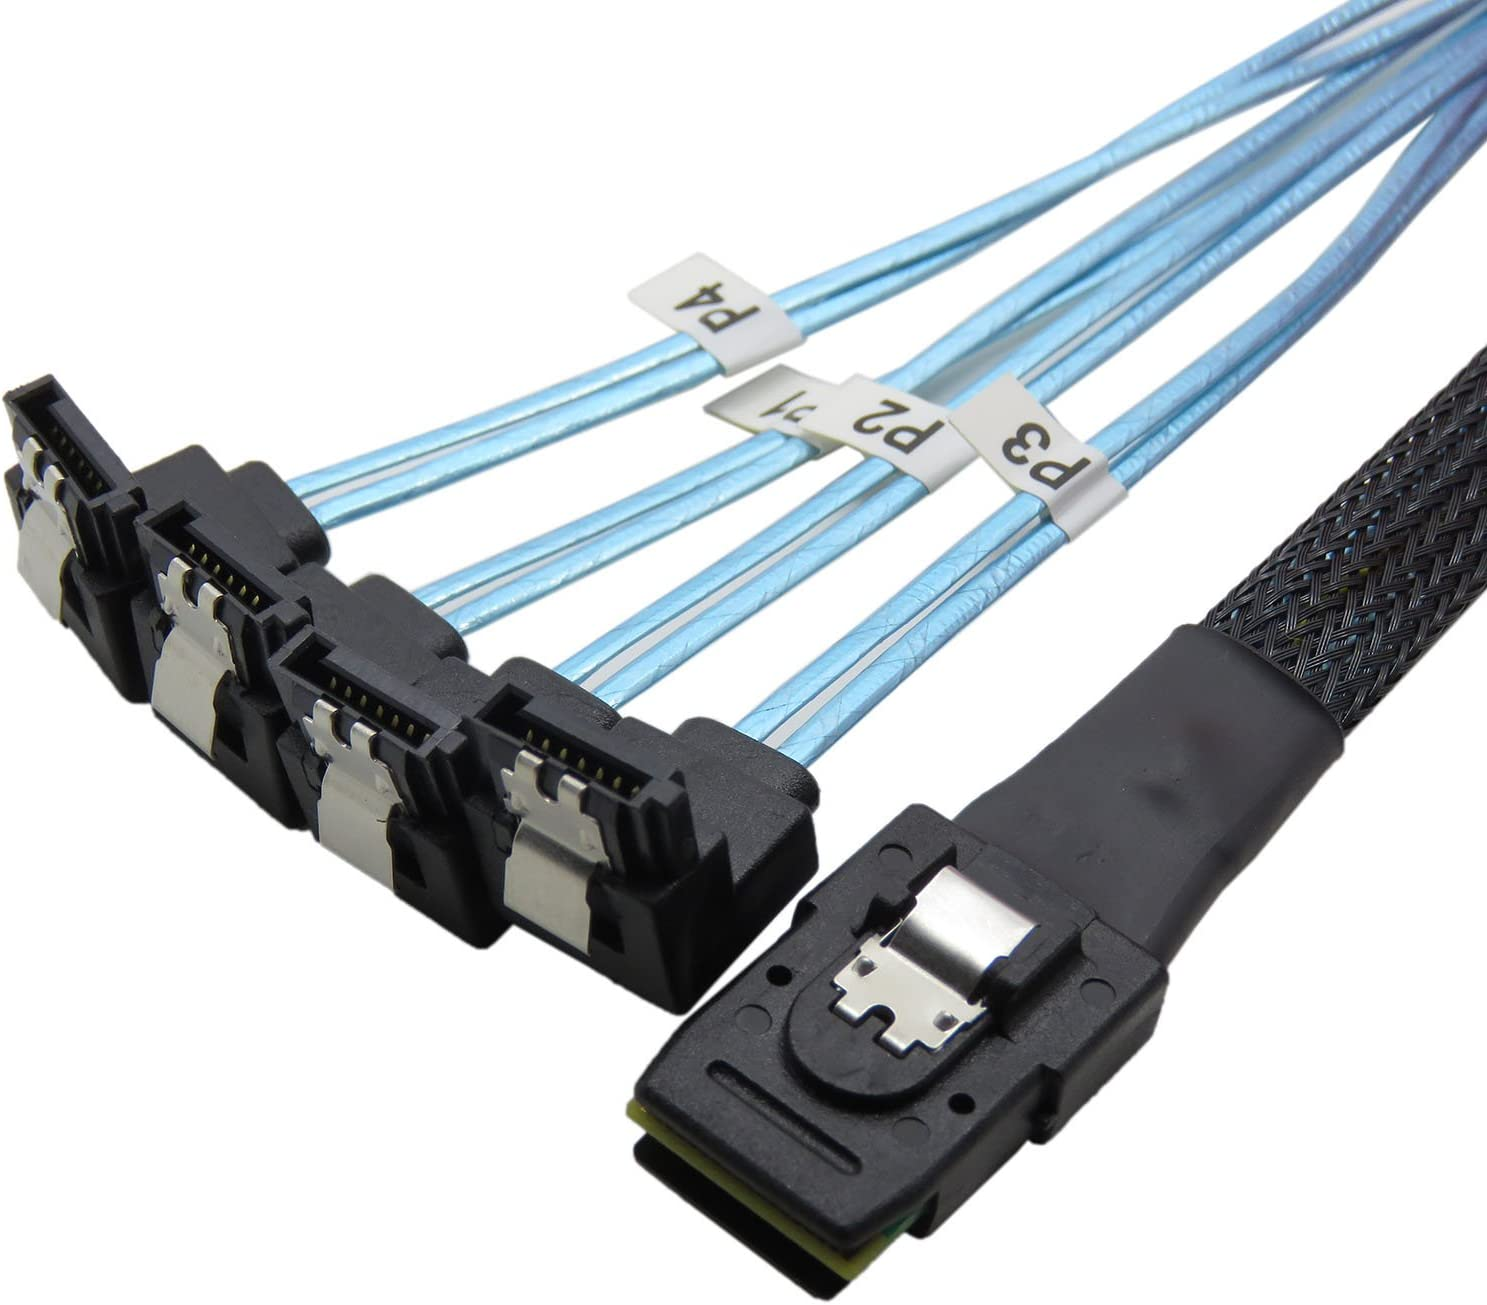 CableDeconn 18' Mini SAS 36P SFF-8087 To 4 SATA 7Pin 90 Degrees Target Hard Disk Data Cable 0.5M (H0304)